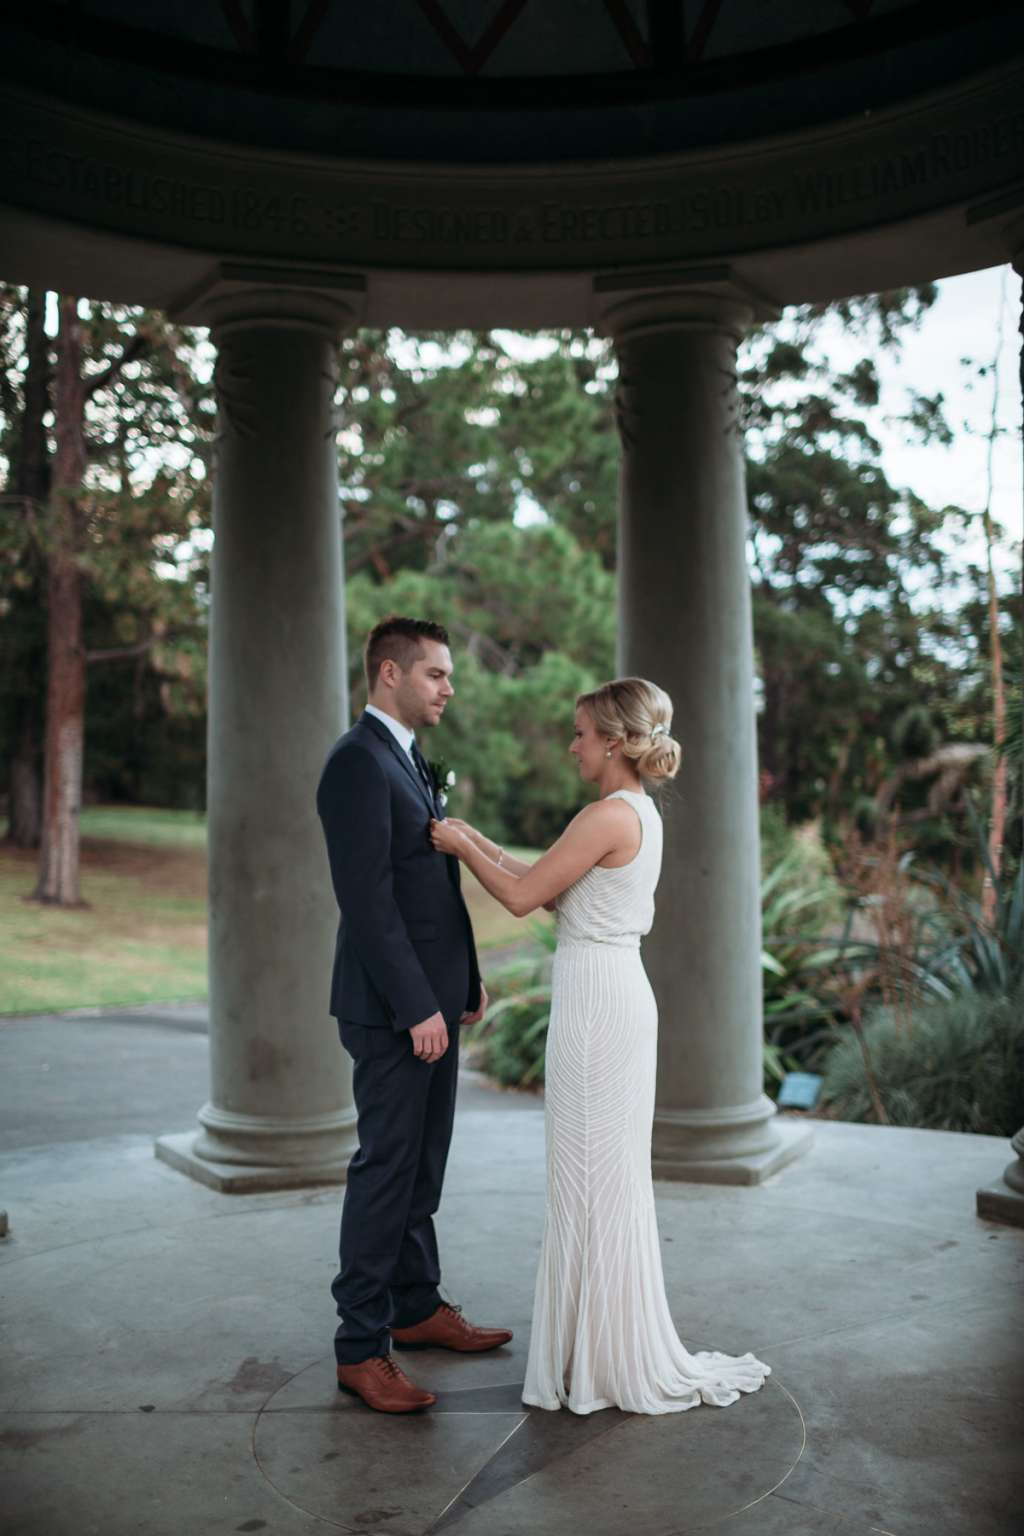 Wedding Photography Melbourne - Max & Megan 291